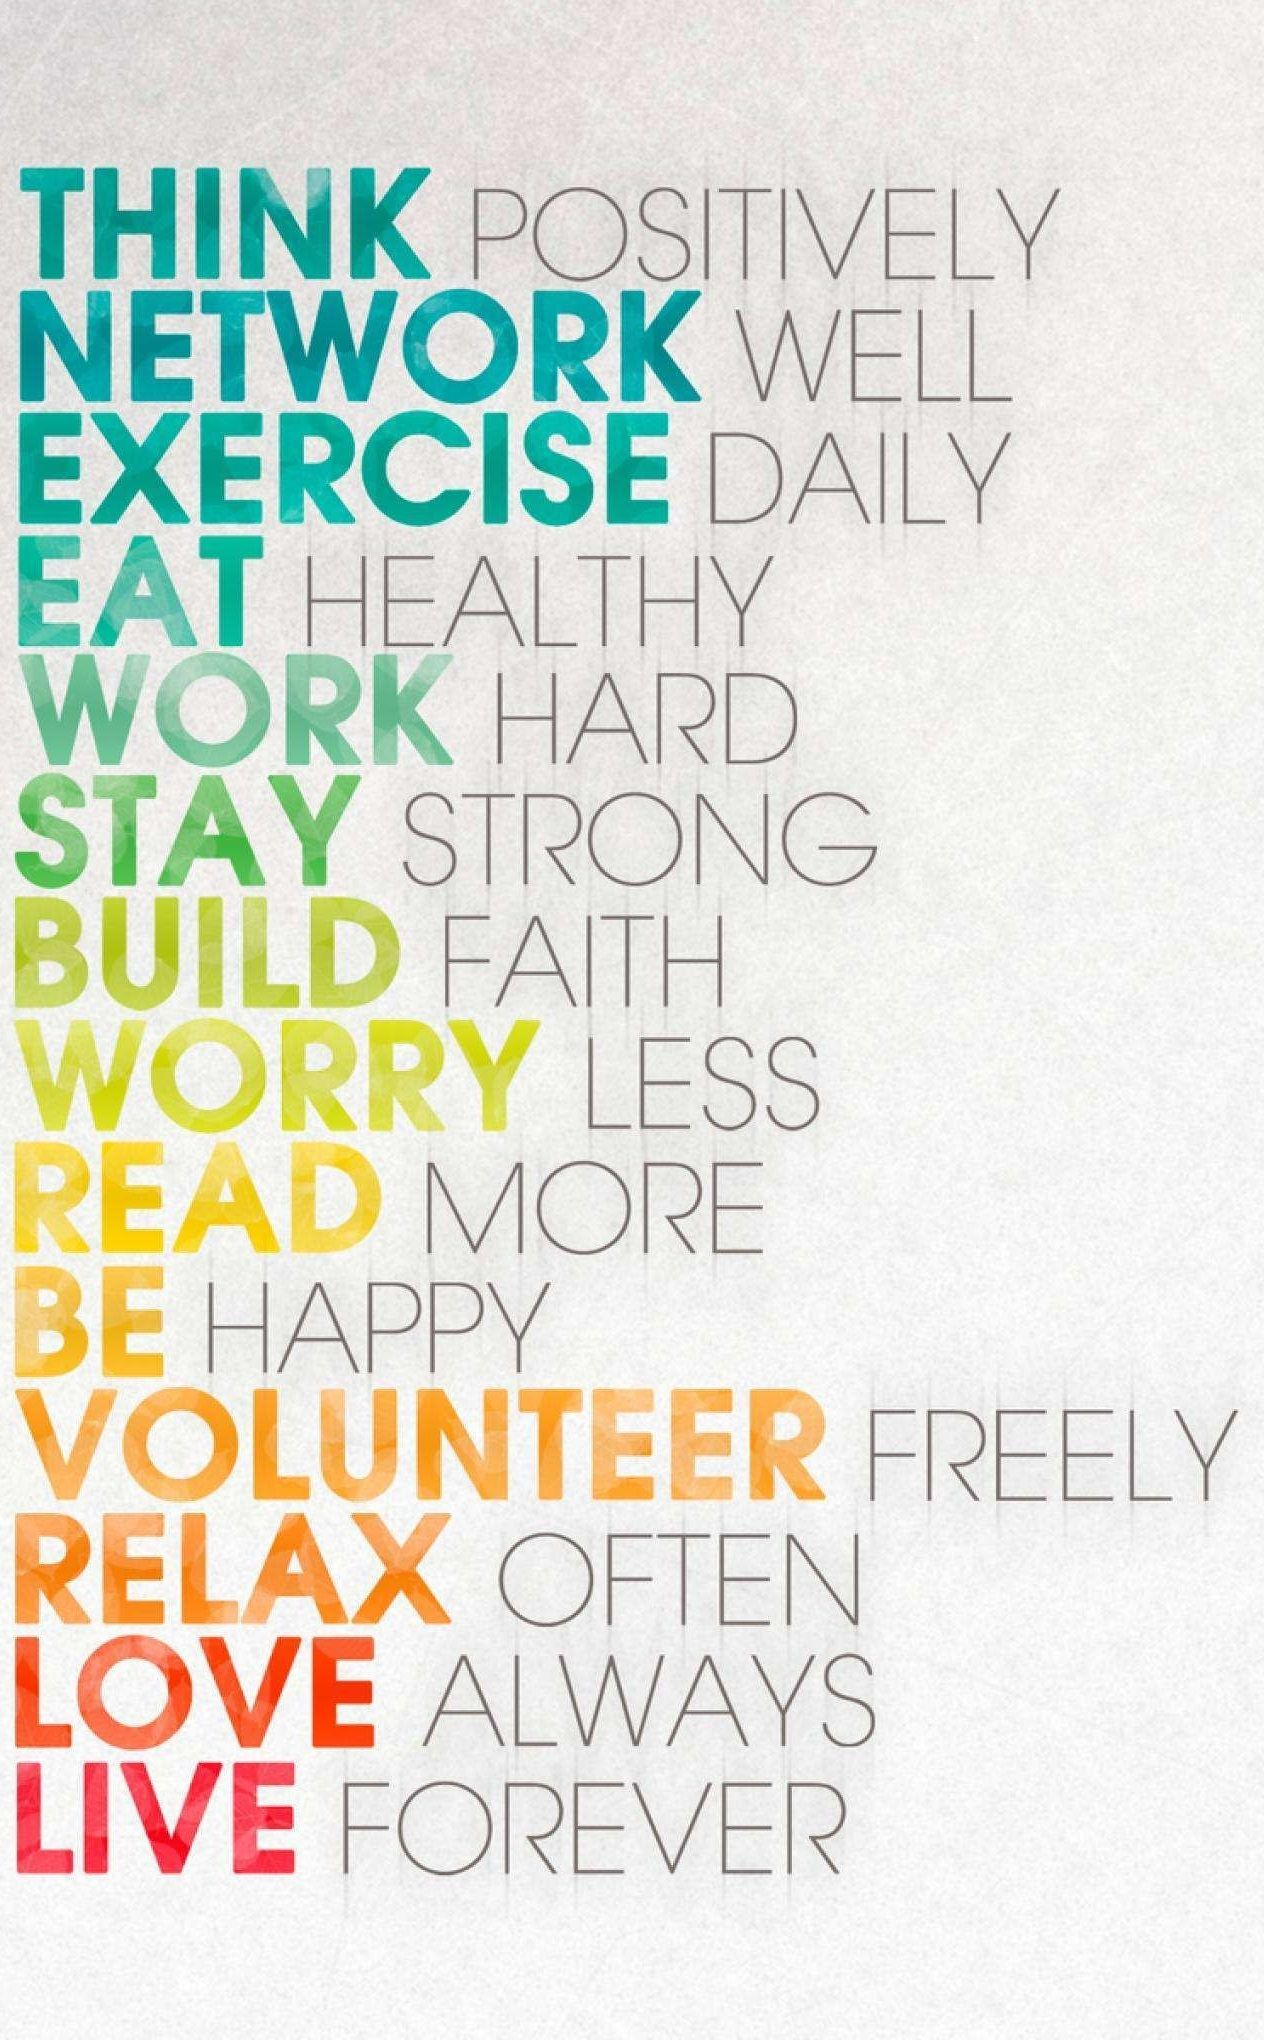 Think positively. Network well. Exercise daily. Eat